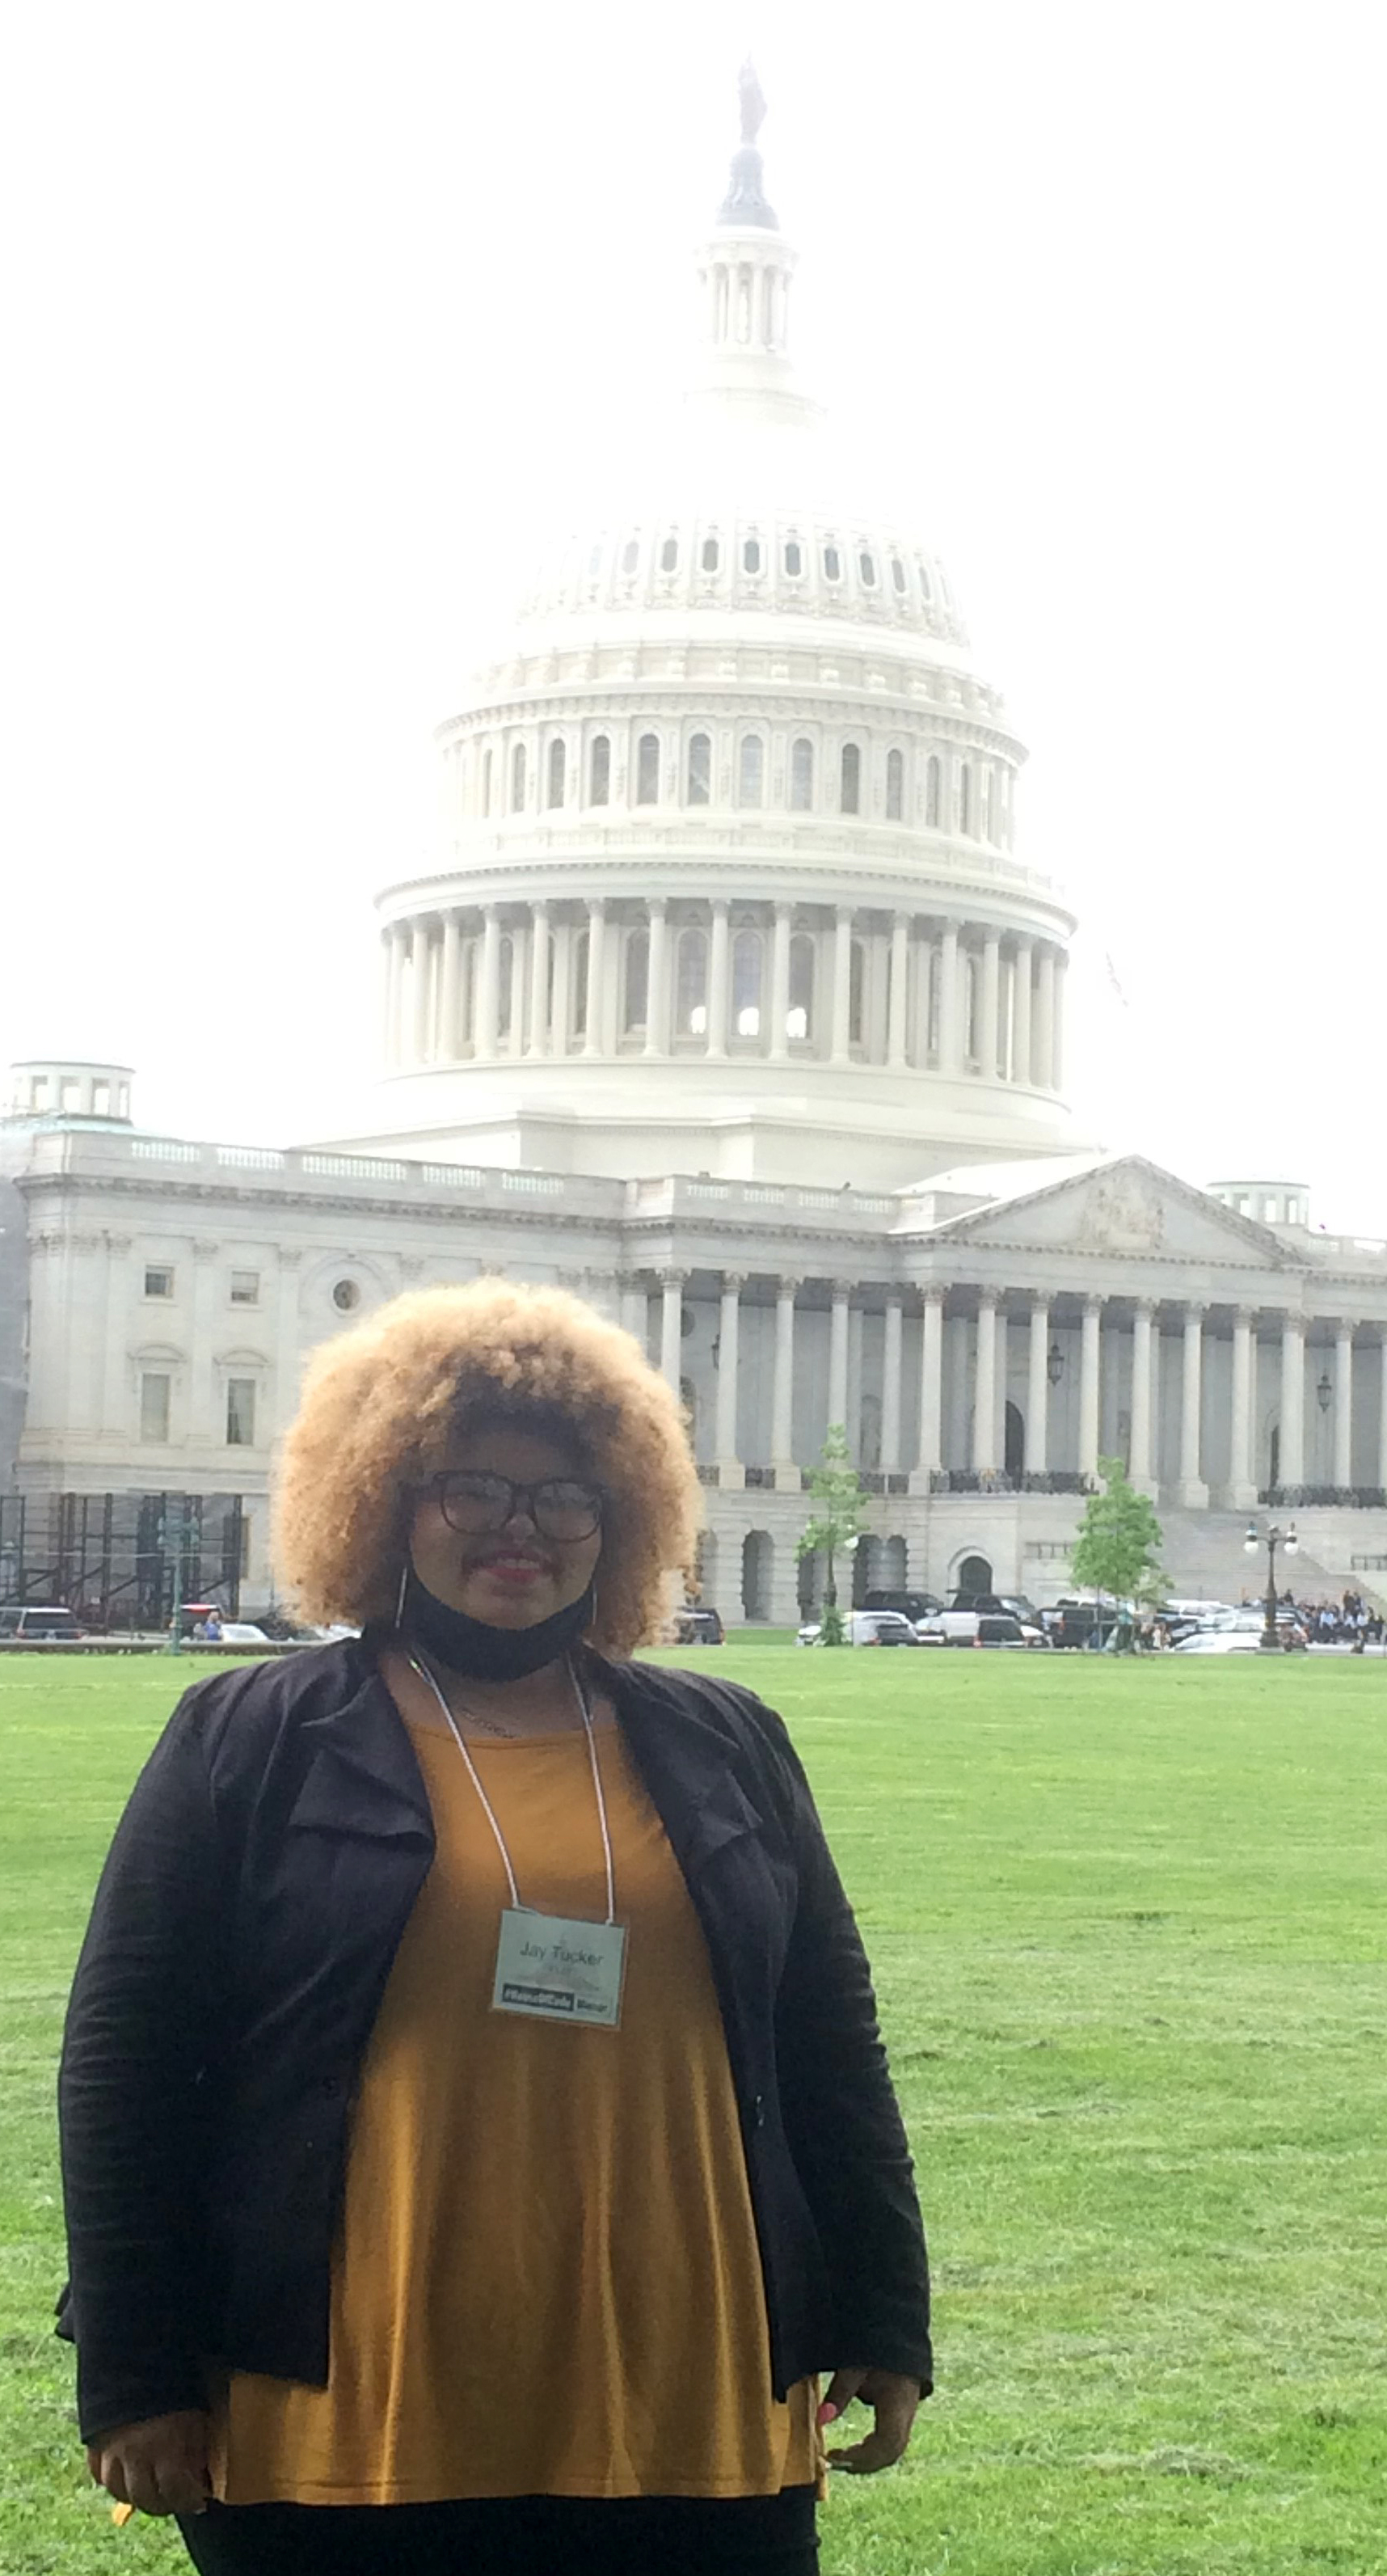 Campbellsville High School senior Jay Tucker was recently honored in Washington, D.C., for winning the First District Congressional App Challenge. She took a tour of Capitol Hill during the events.